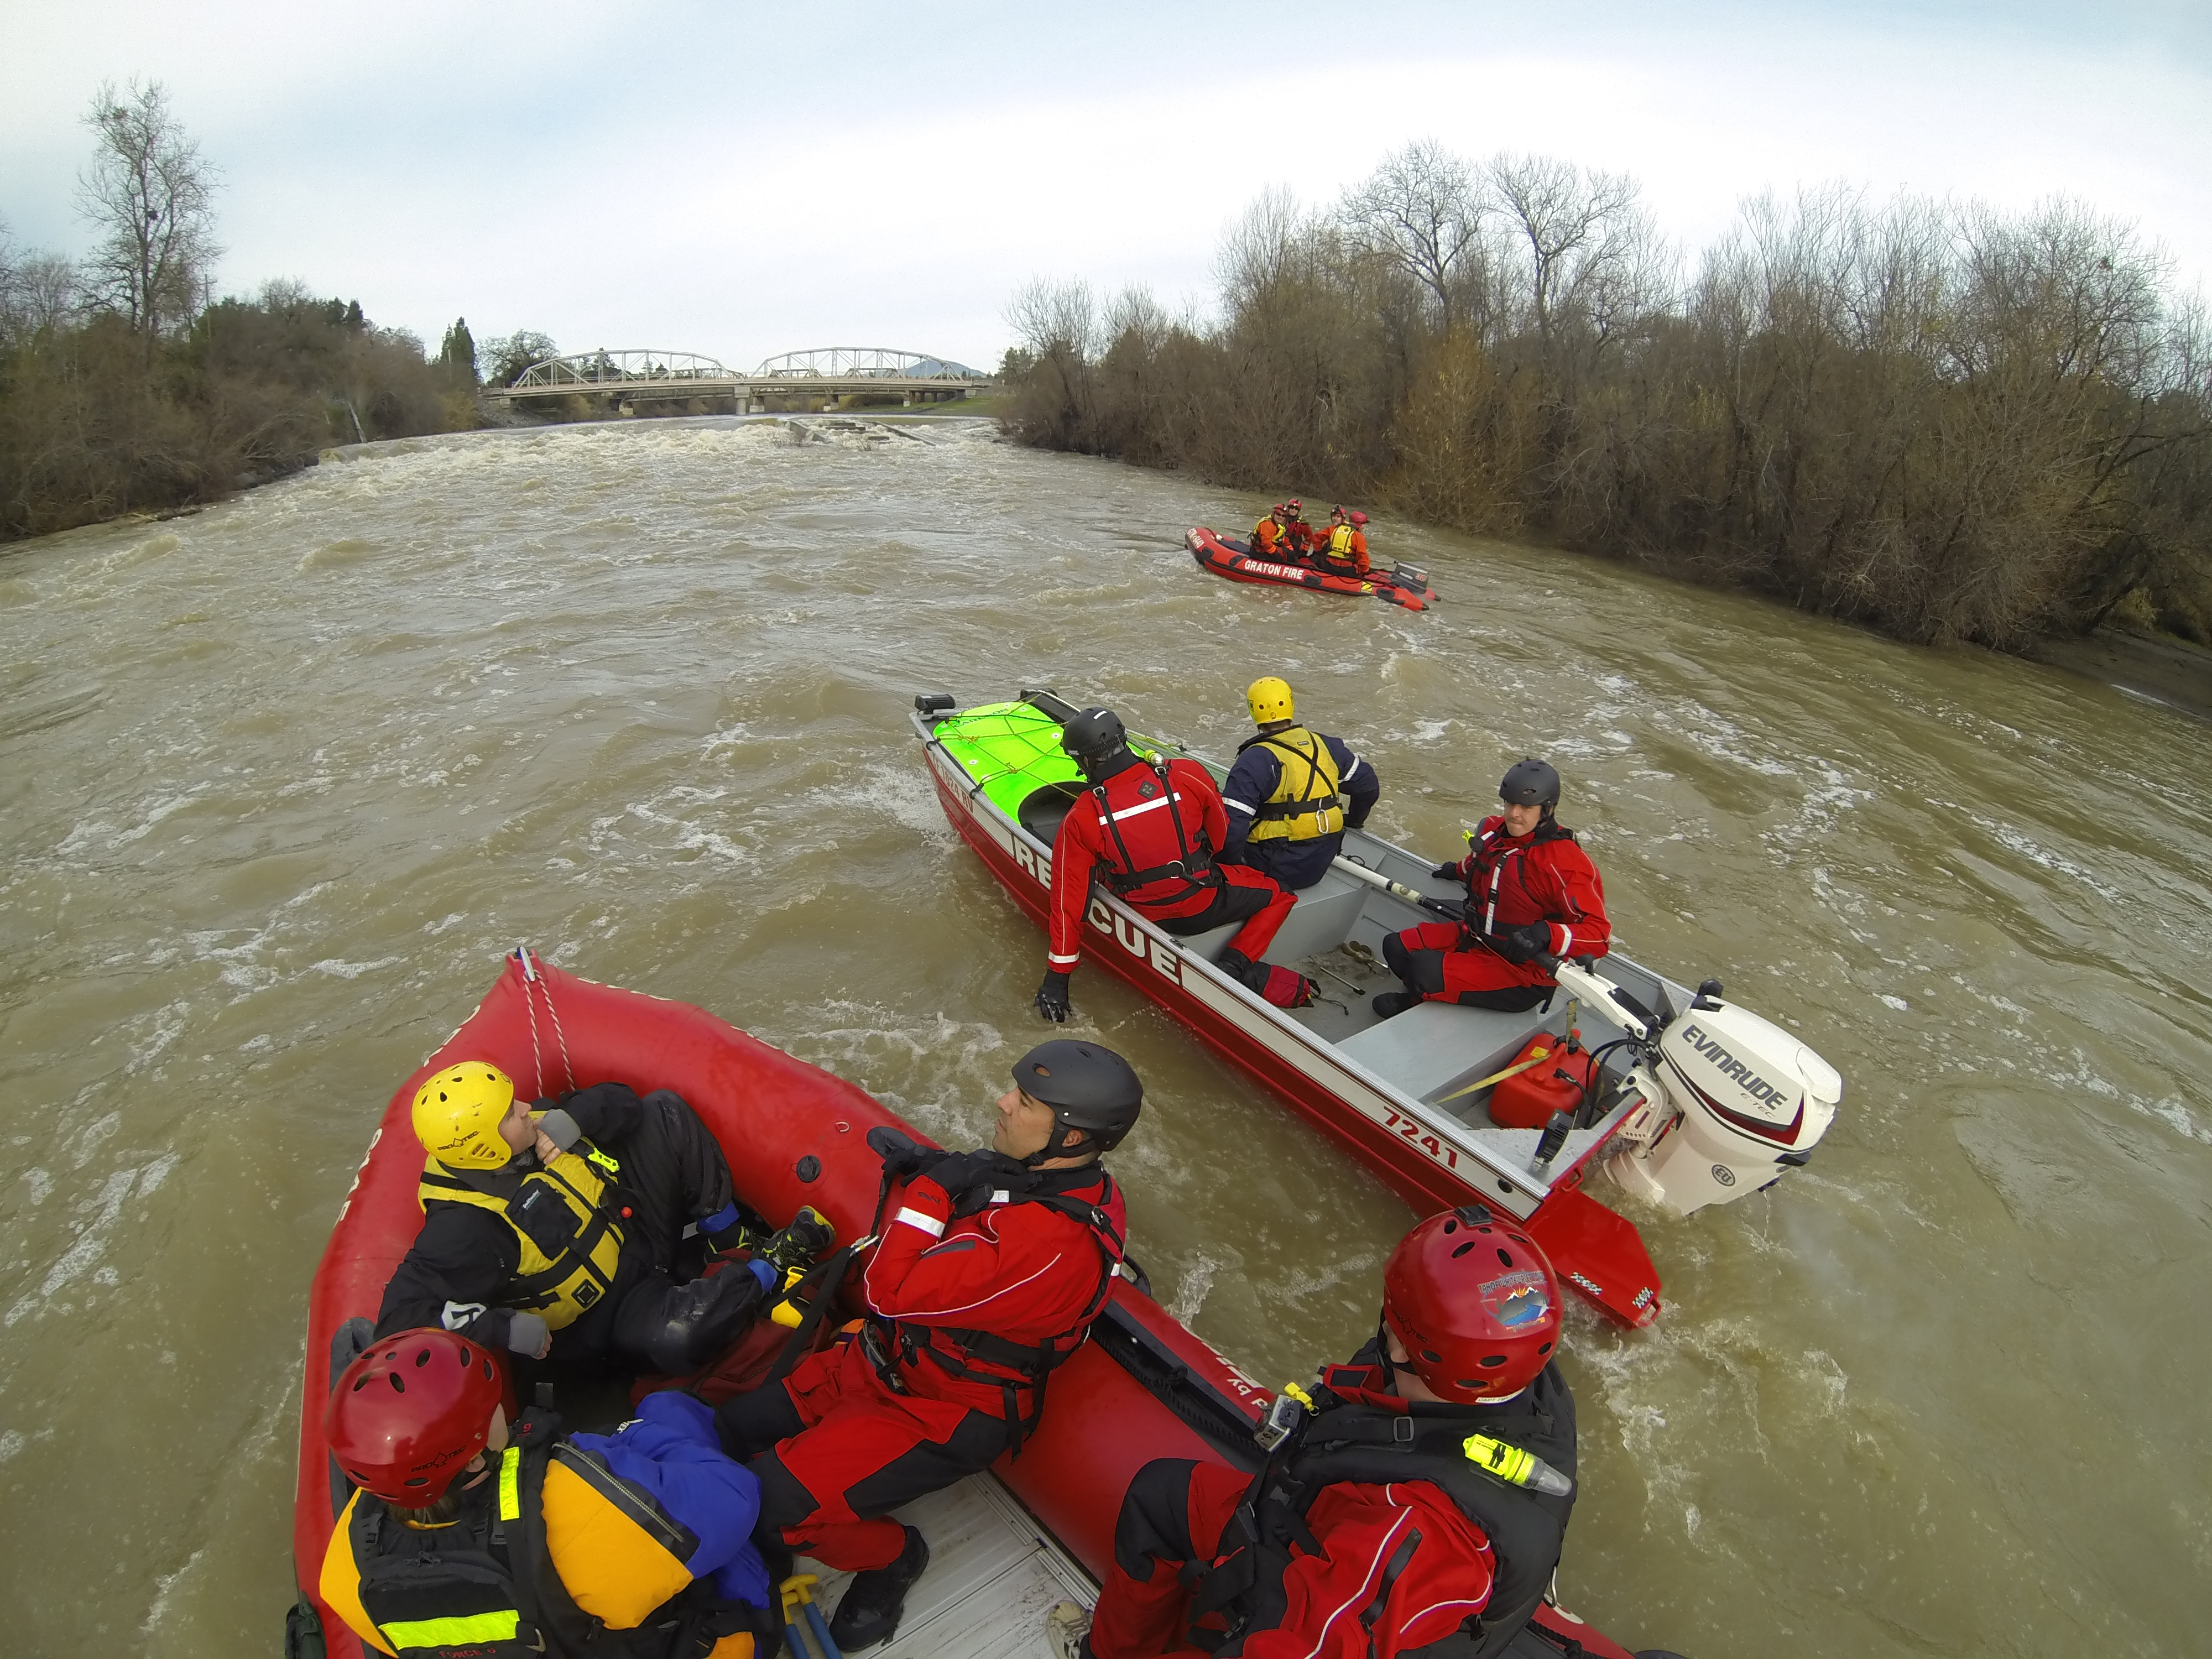 Firefighters doing a rescue in boats on the flooded Russian River.